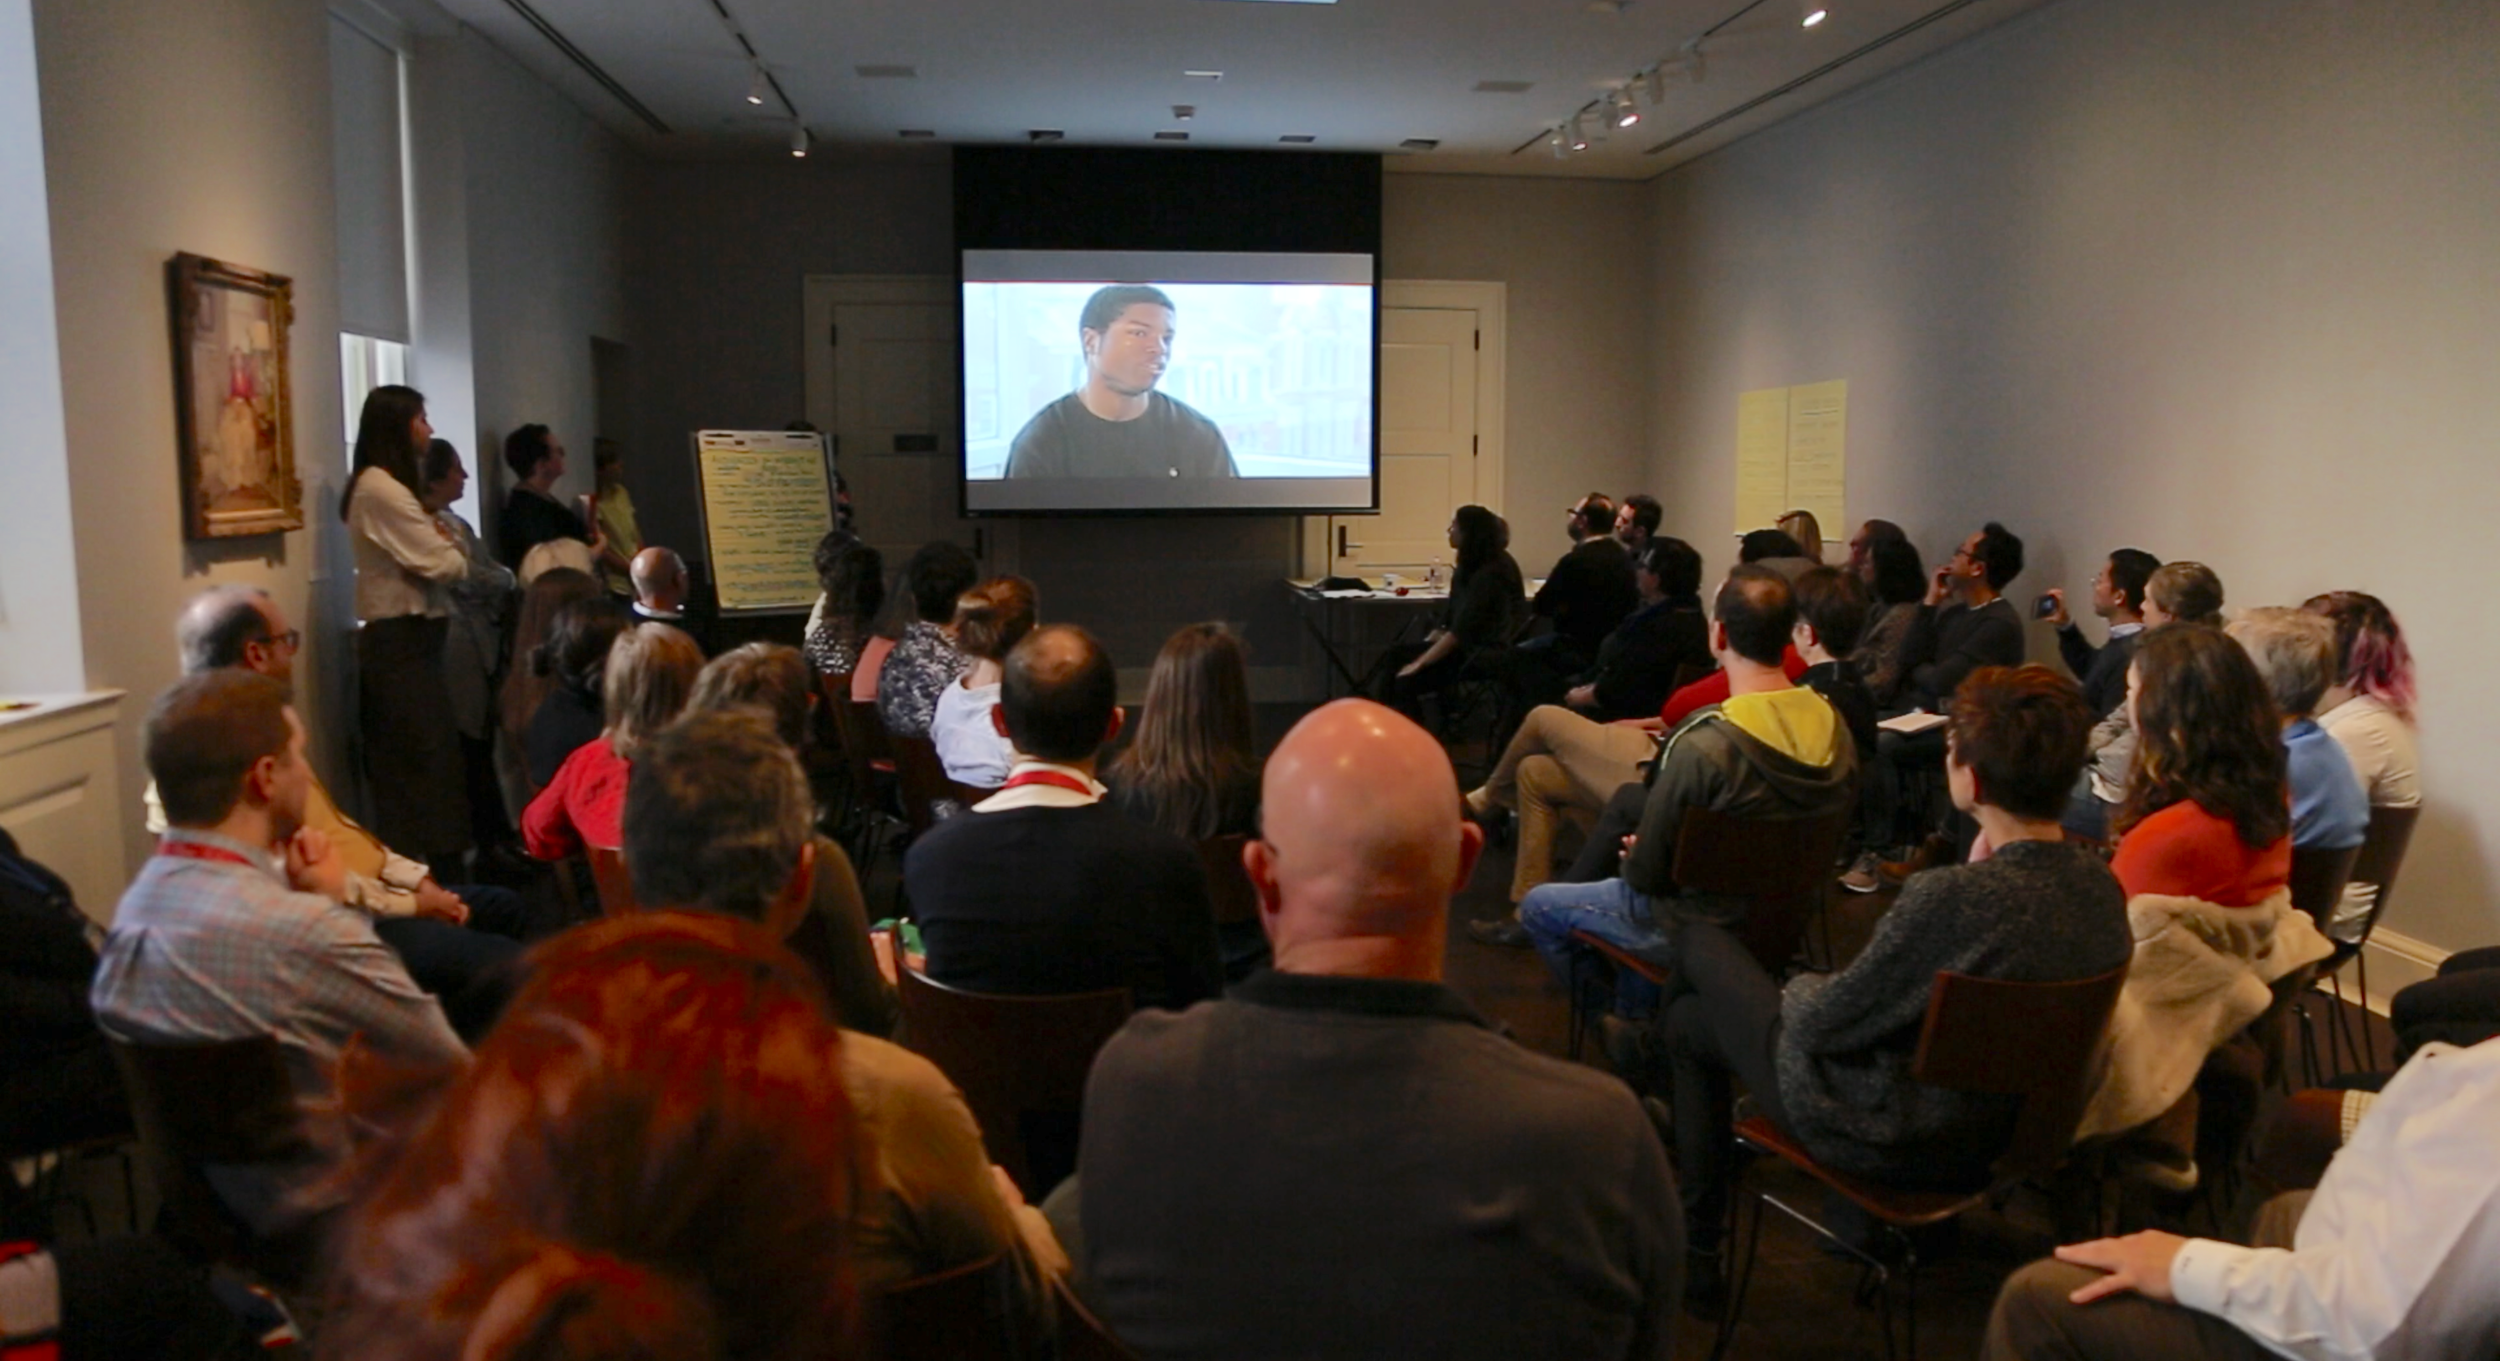 Video Screening at All-Staff Dialogue, RISD Museum.